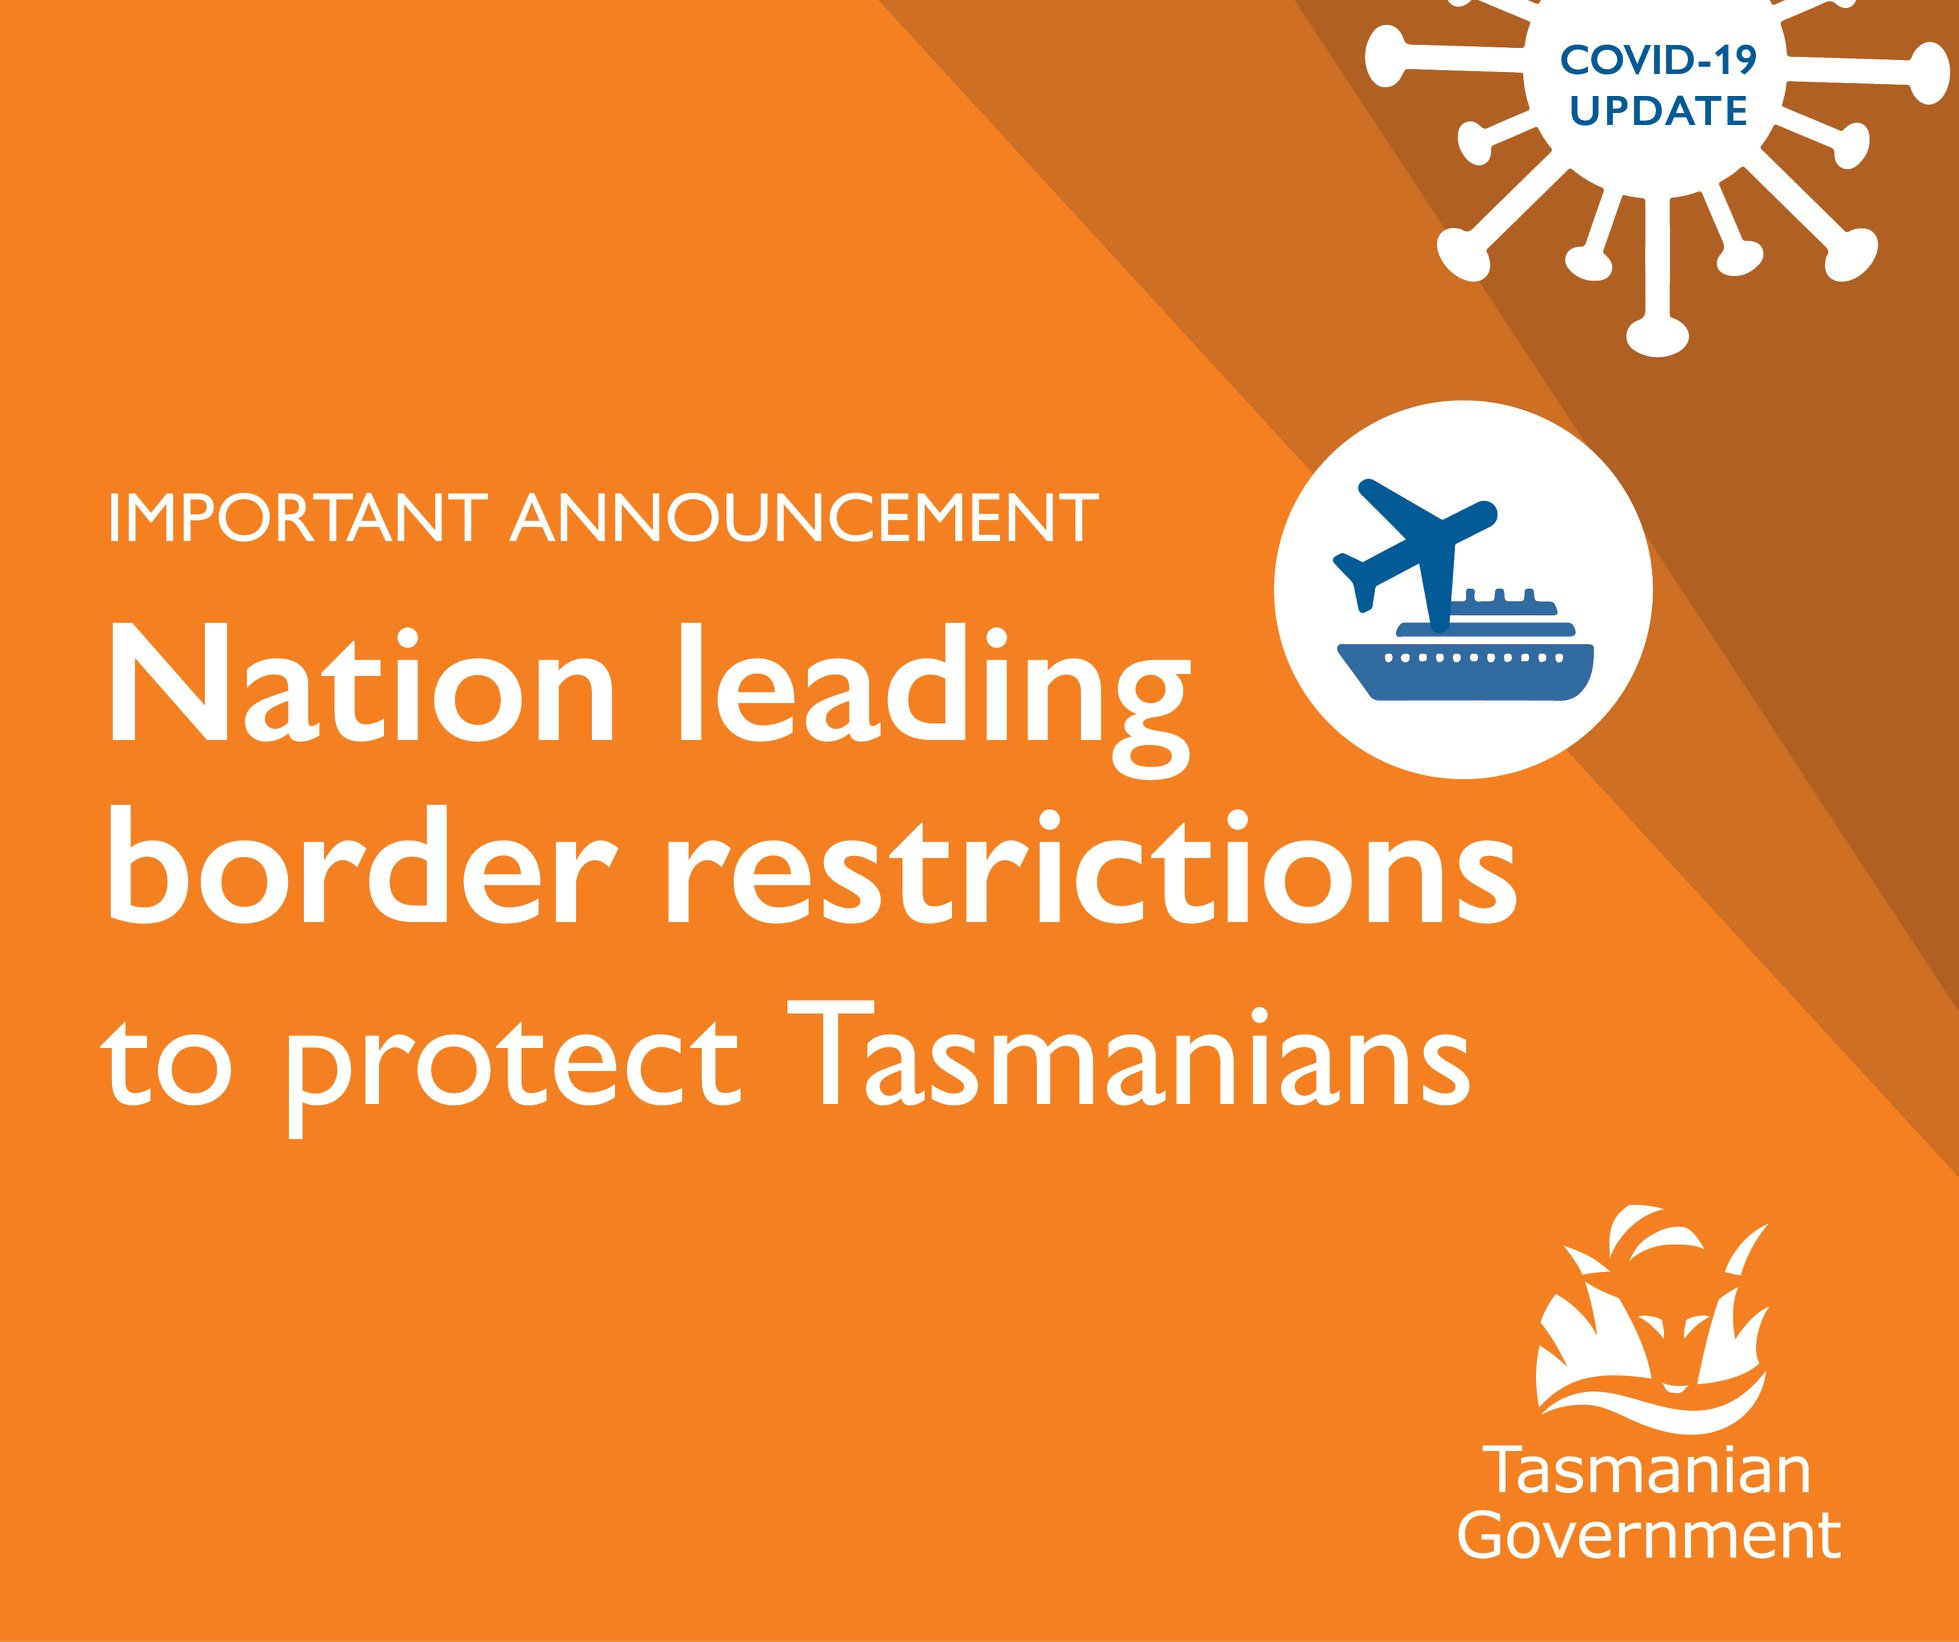 Nation Leading Border Restrictions to Protect Tasmanians